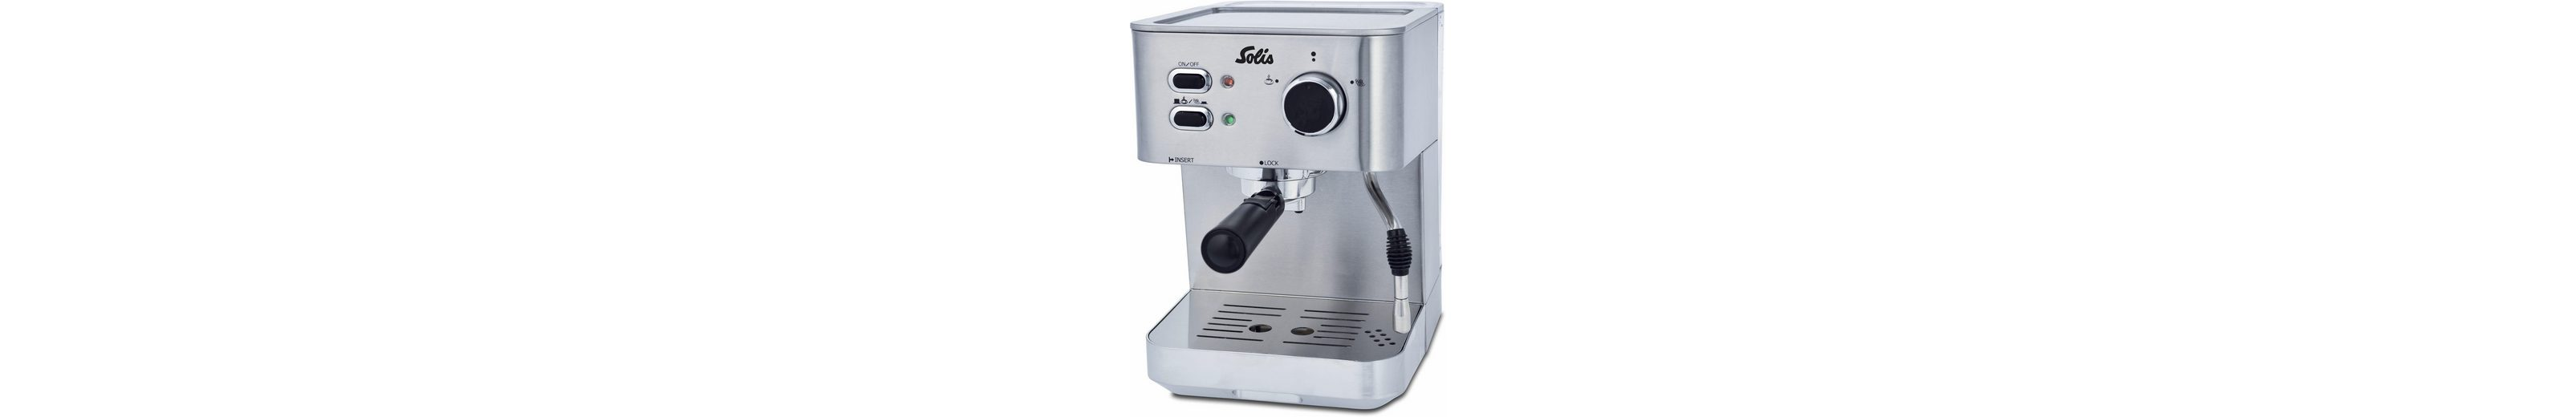 switzerland espresso machine